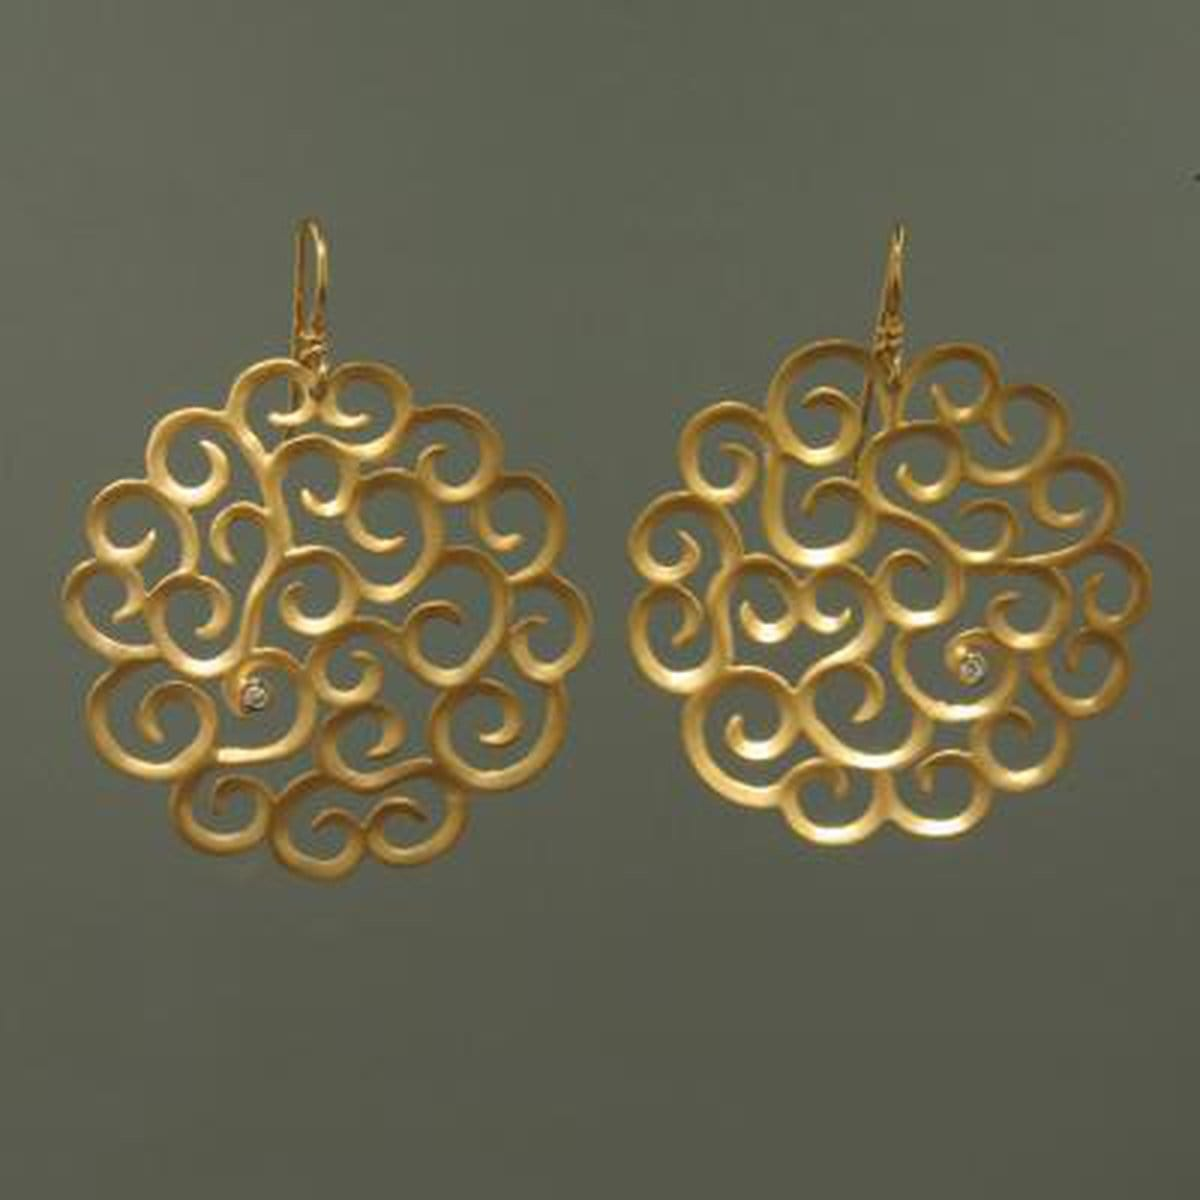 Marika Diamond & 14k Gold Earrings - M2985-Marika-Renee Taylor Gallery